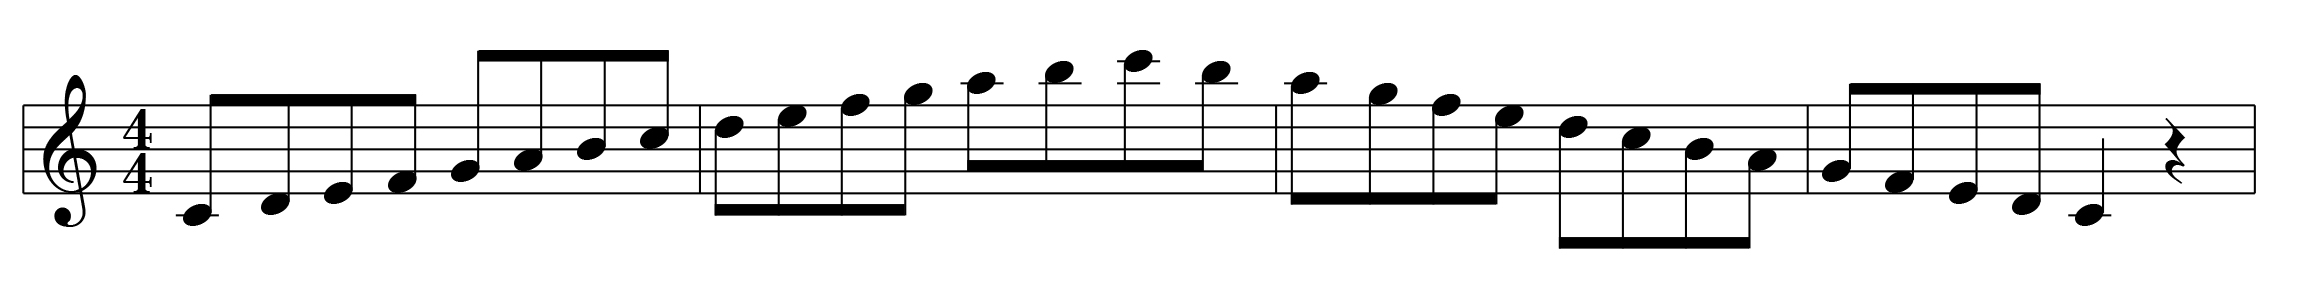 C Major Scale Right Hand